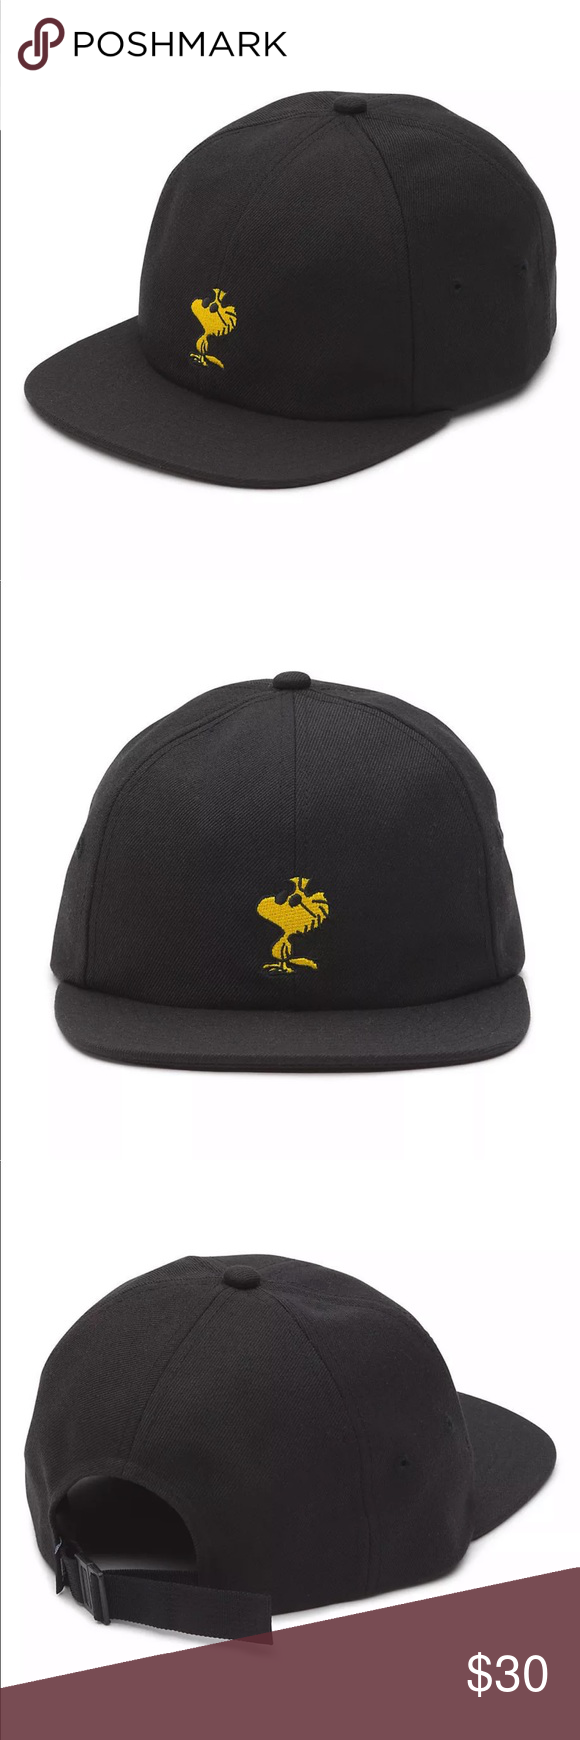 241fc44d Vans Peanuts Woodstock Dad Hat Brand new, with tags Vans Peanuts Woodstock  Dad Hat Black Vans Accessories Hats